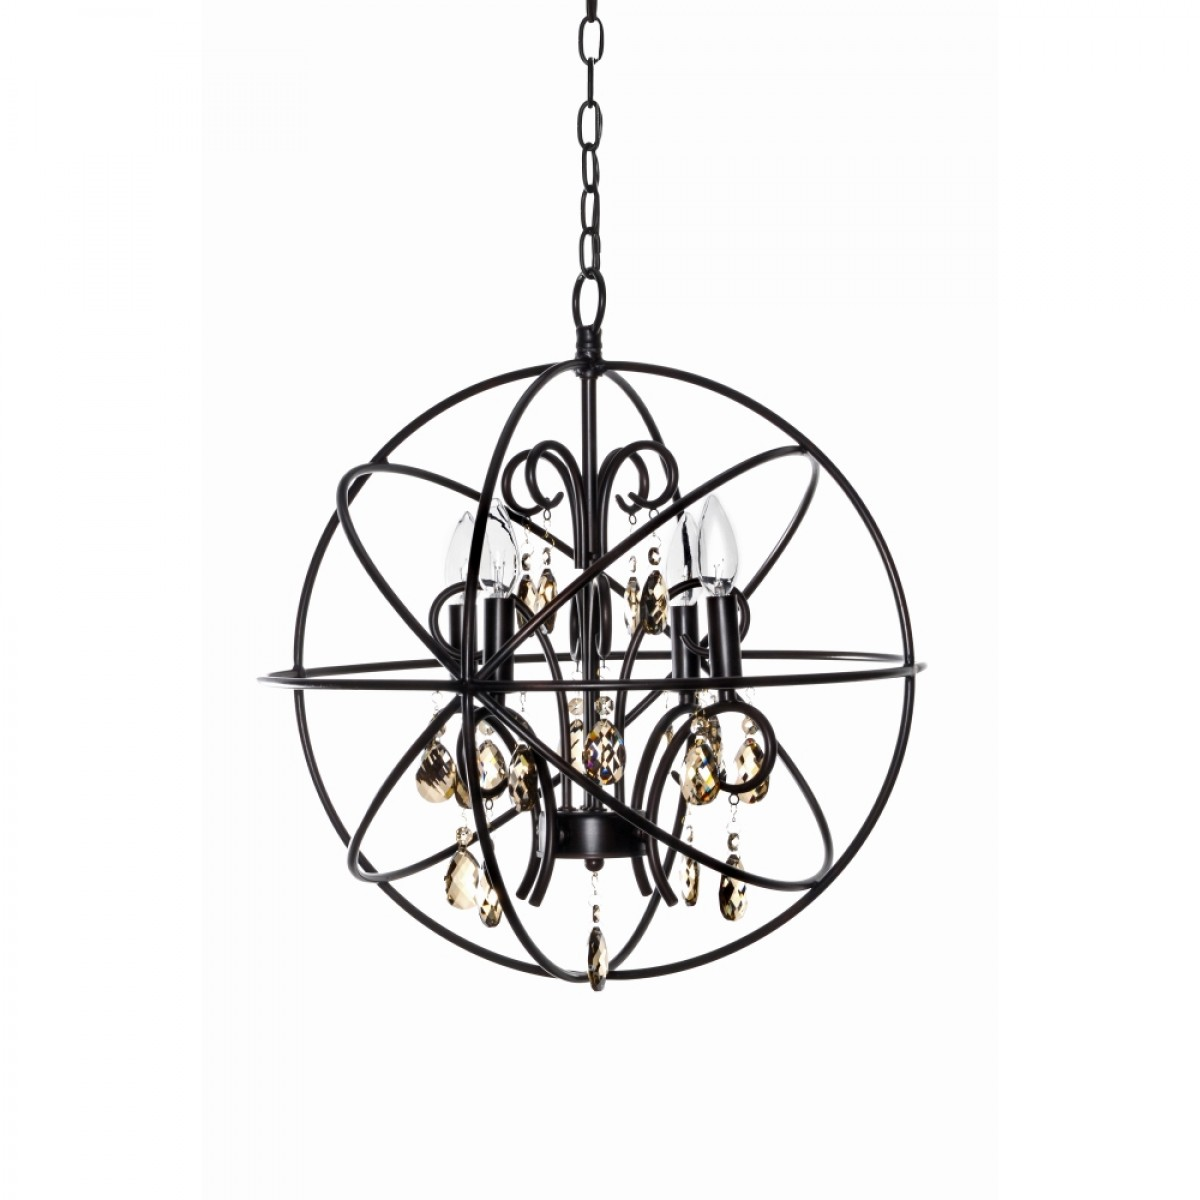 Alluring unique design of orbit chandelier with iron or stainless for ceiling lighting decorating ideas